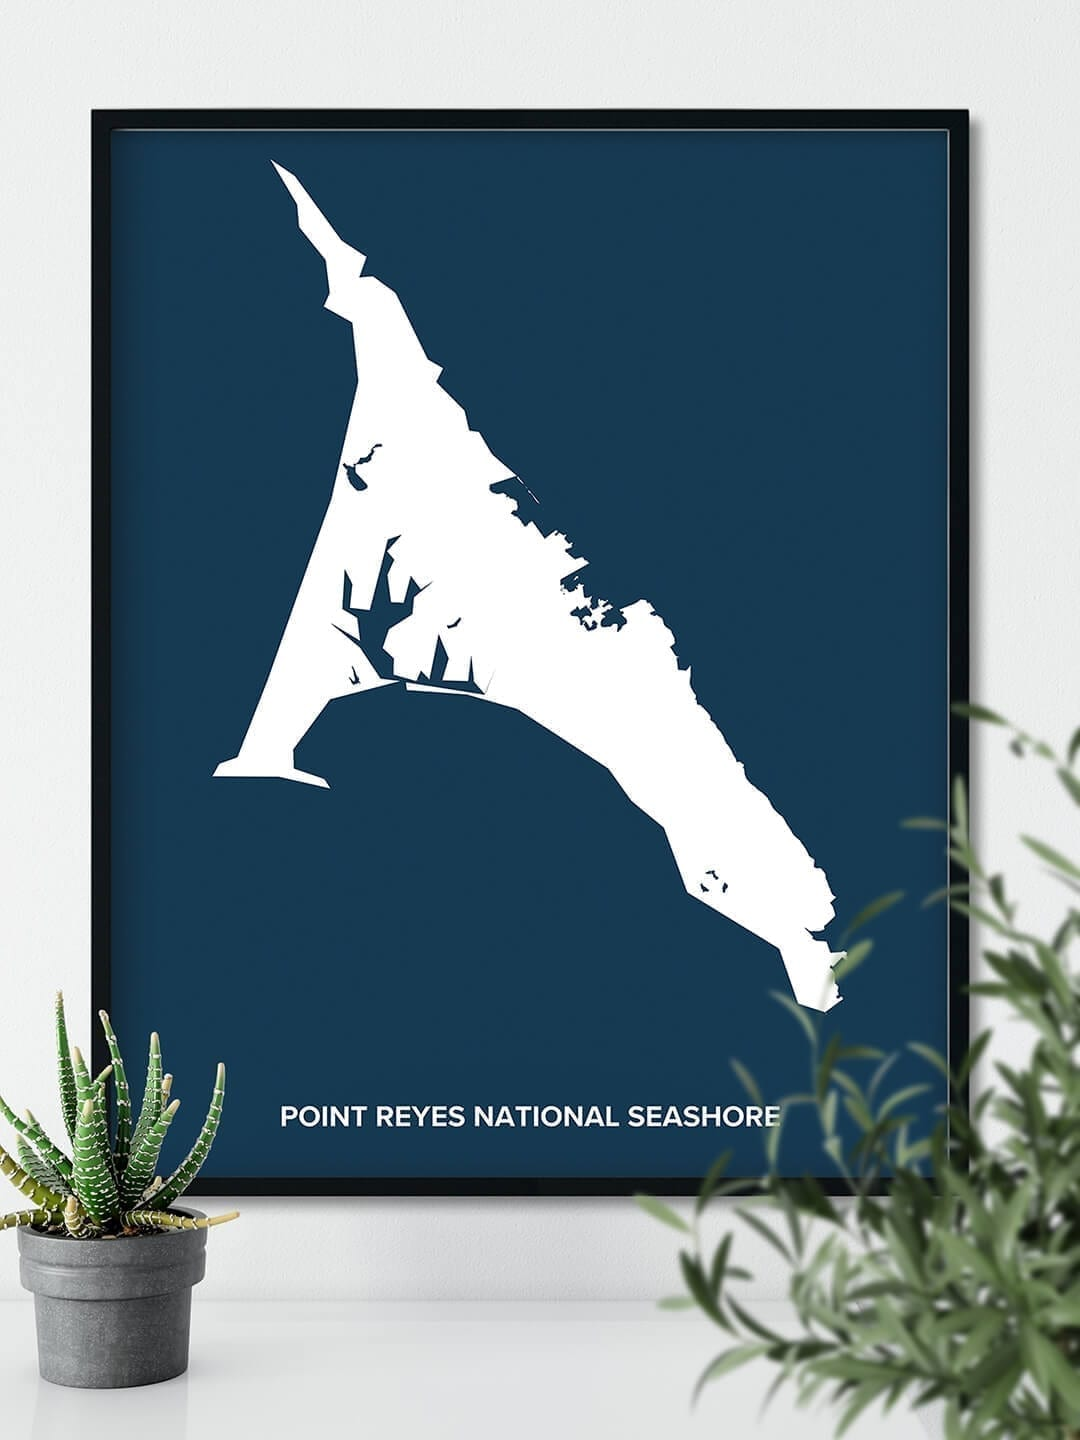 Point Reyes National Seashore Wall Art Print